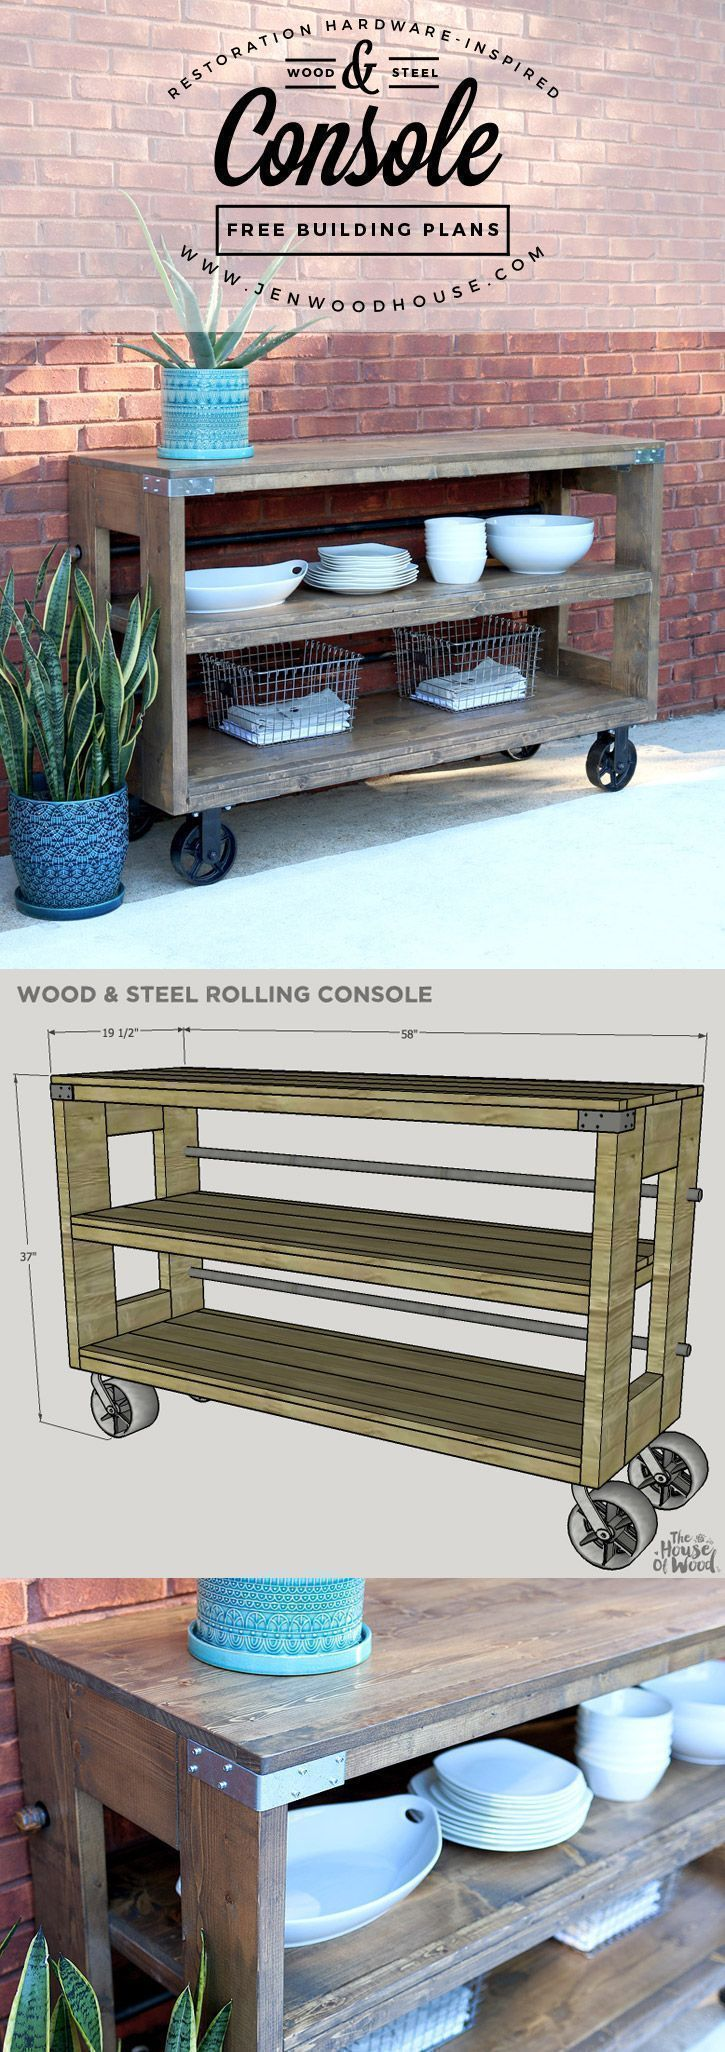 How to make a sofa table from 1 x 6 lumber - How To Build A Diy Restoration Hardware Inspired Wood And Steel Console Via Jen Woodhouse